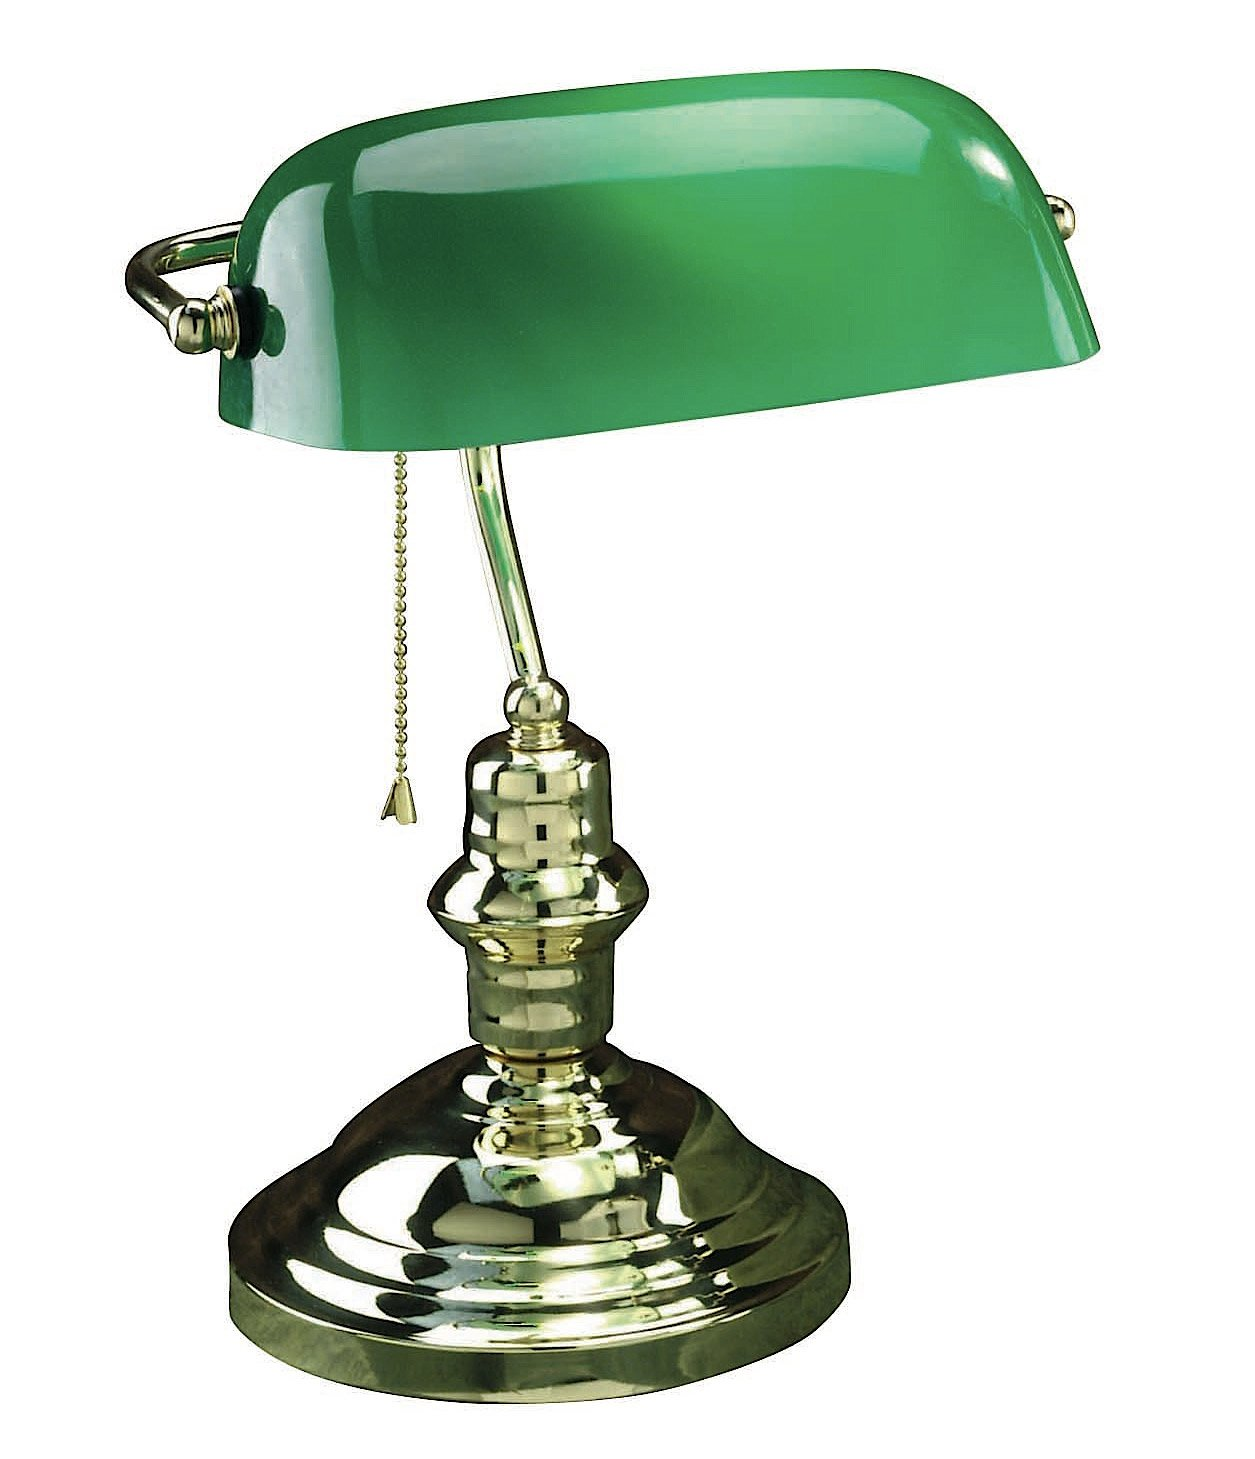 Amazon lite source ls 224ab banker 14 12 inch 60 watt bankers amazon lite source ls 224ab banker 14 12 inch 60 watt bankers lamp with green glass shade antique brass home improvement aloadofball Images